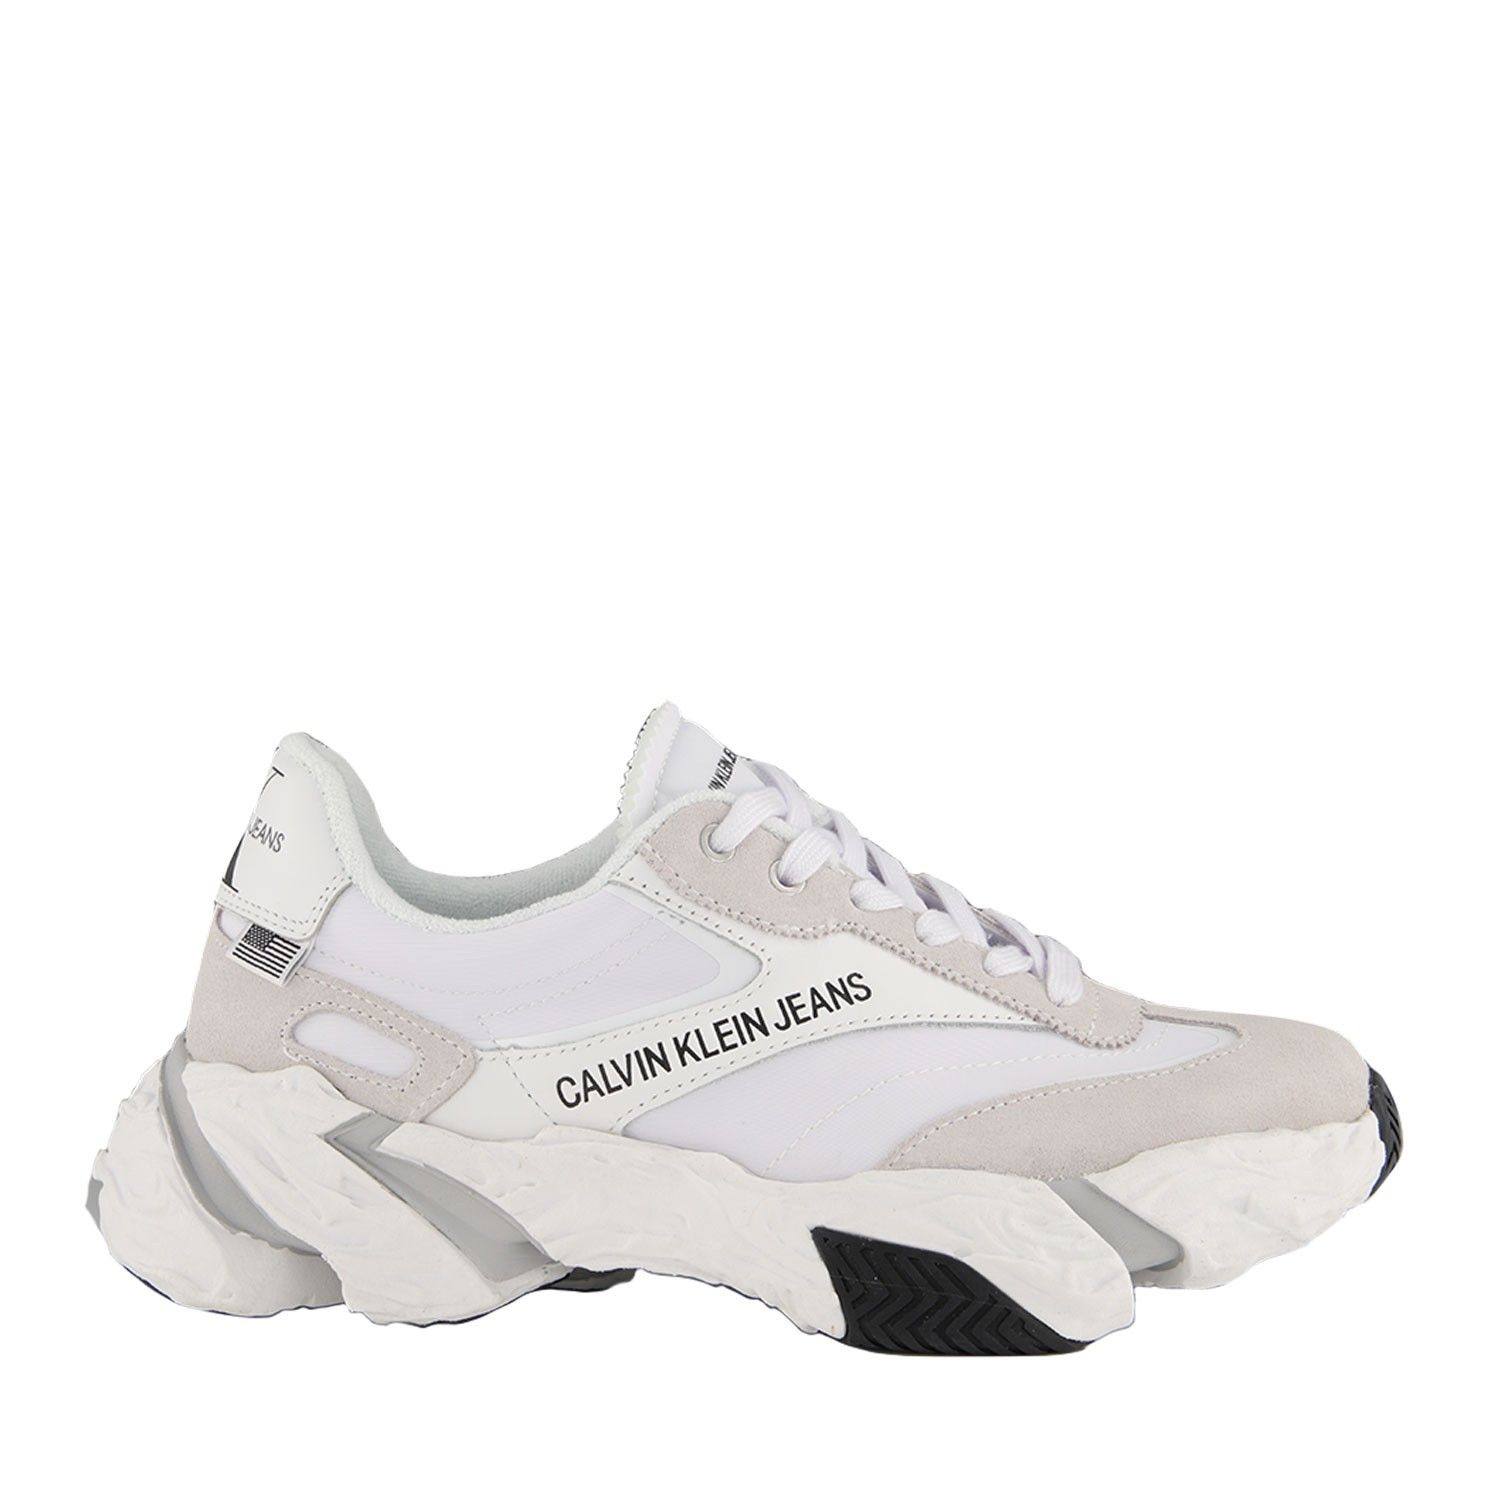 Picture of Calvin Klein SIGMA womens sneakers white